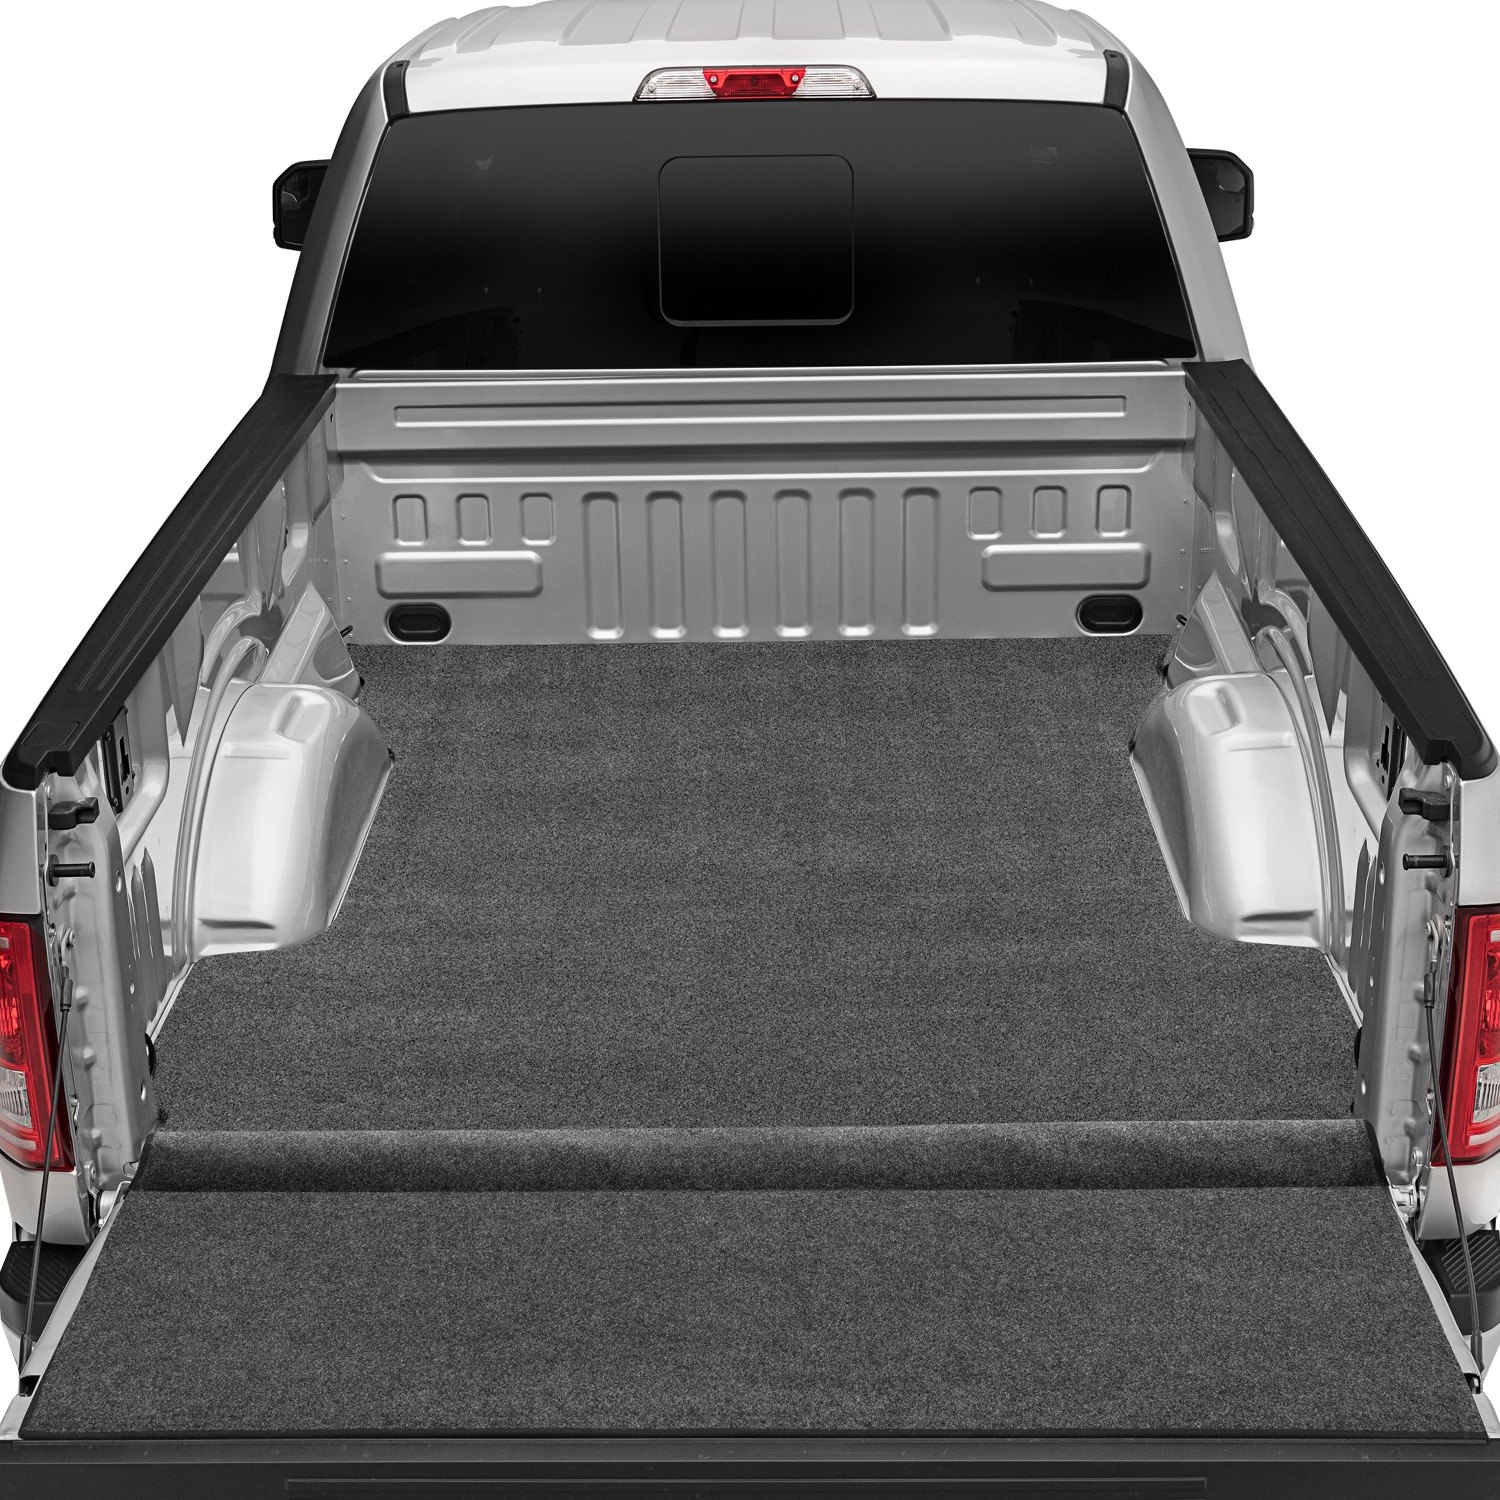 buy cheap BedRug® XLTBMT09CCS - XLT Bed Mat for Non or Spray-In Liner for 2015 RAM 1500 TRUCK Ebay & Amazon